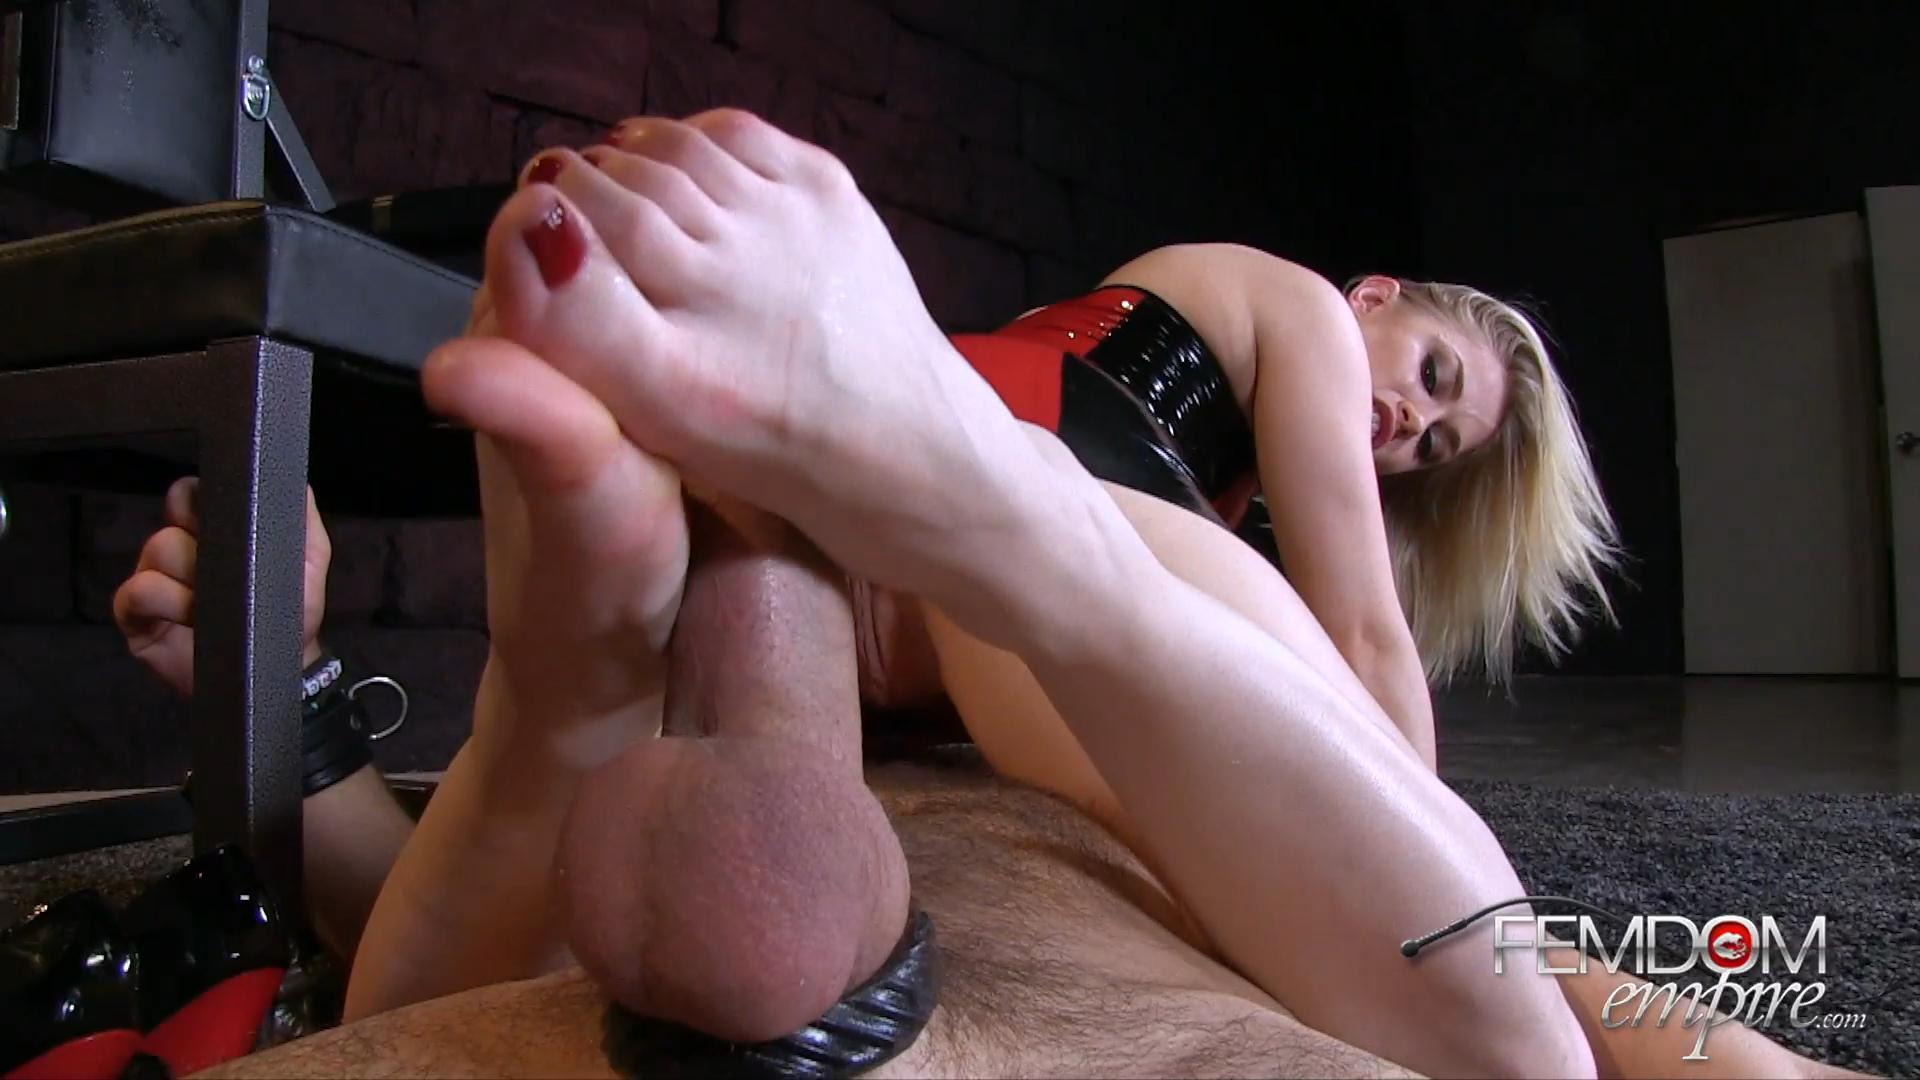 Size 5 Cock Tease – Femdom Empire_cover